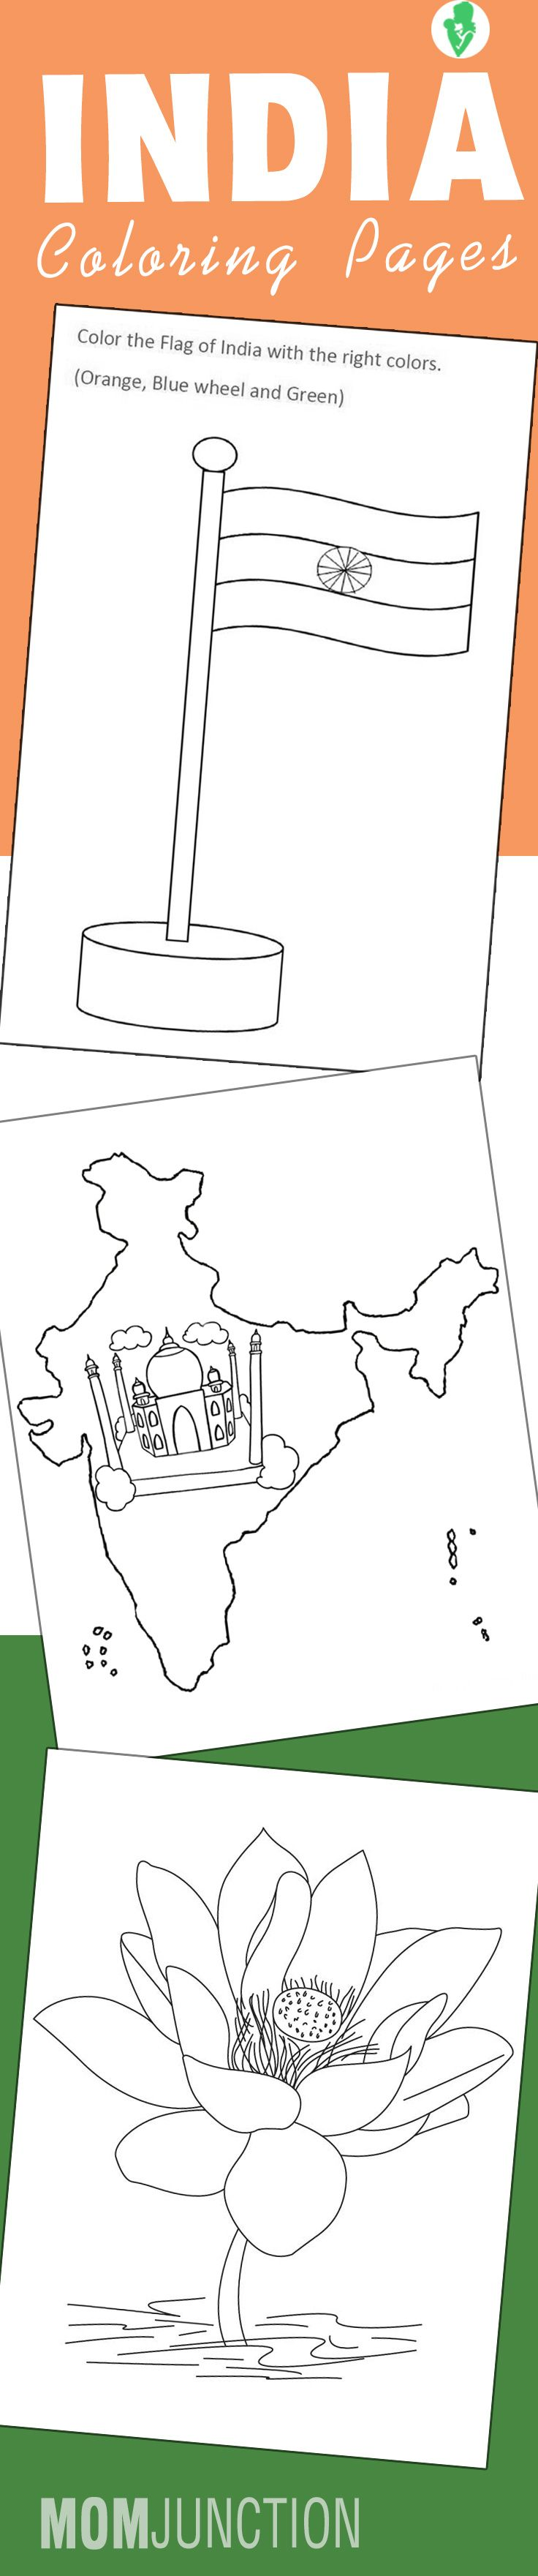 National Symbols of India coloring printable pages | Holi - Festival ...